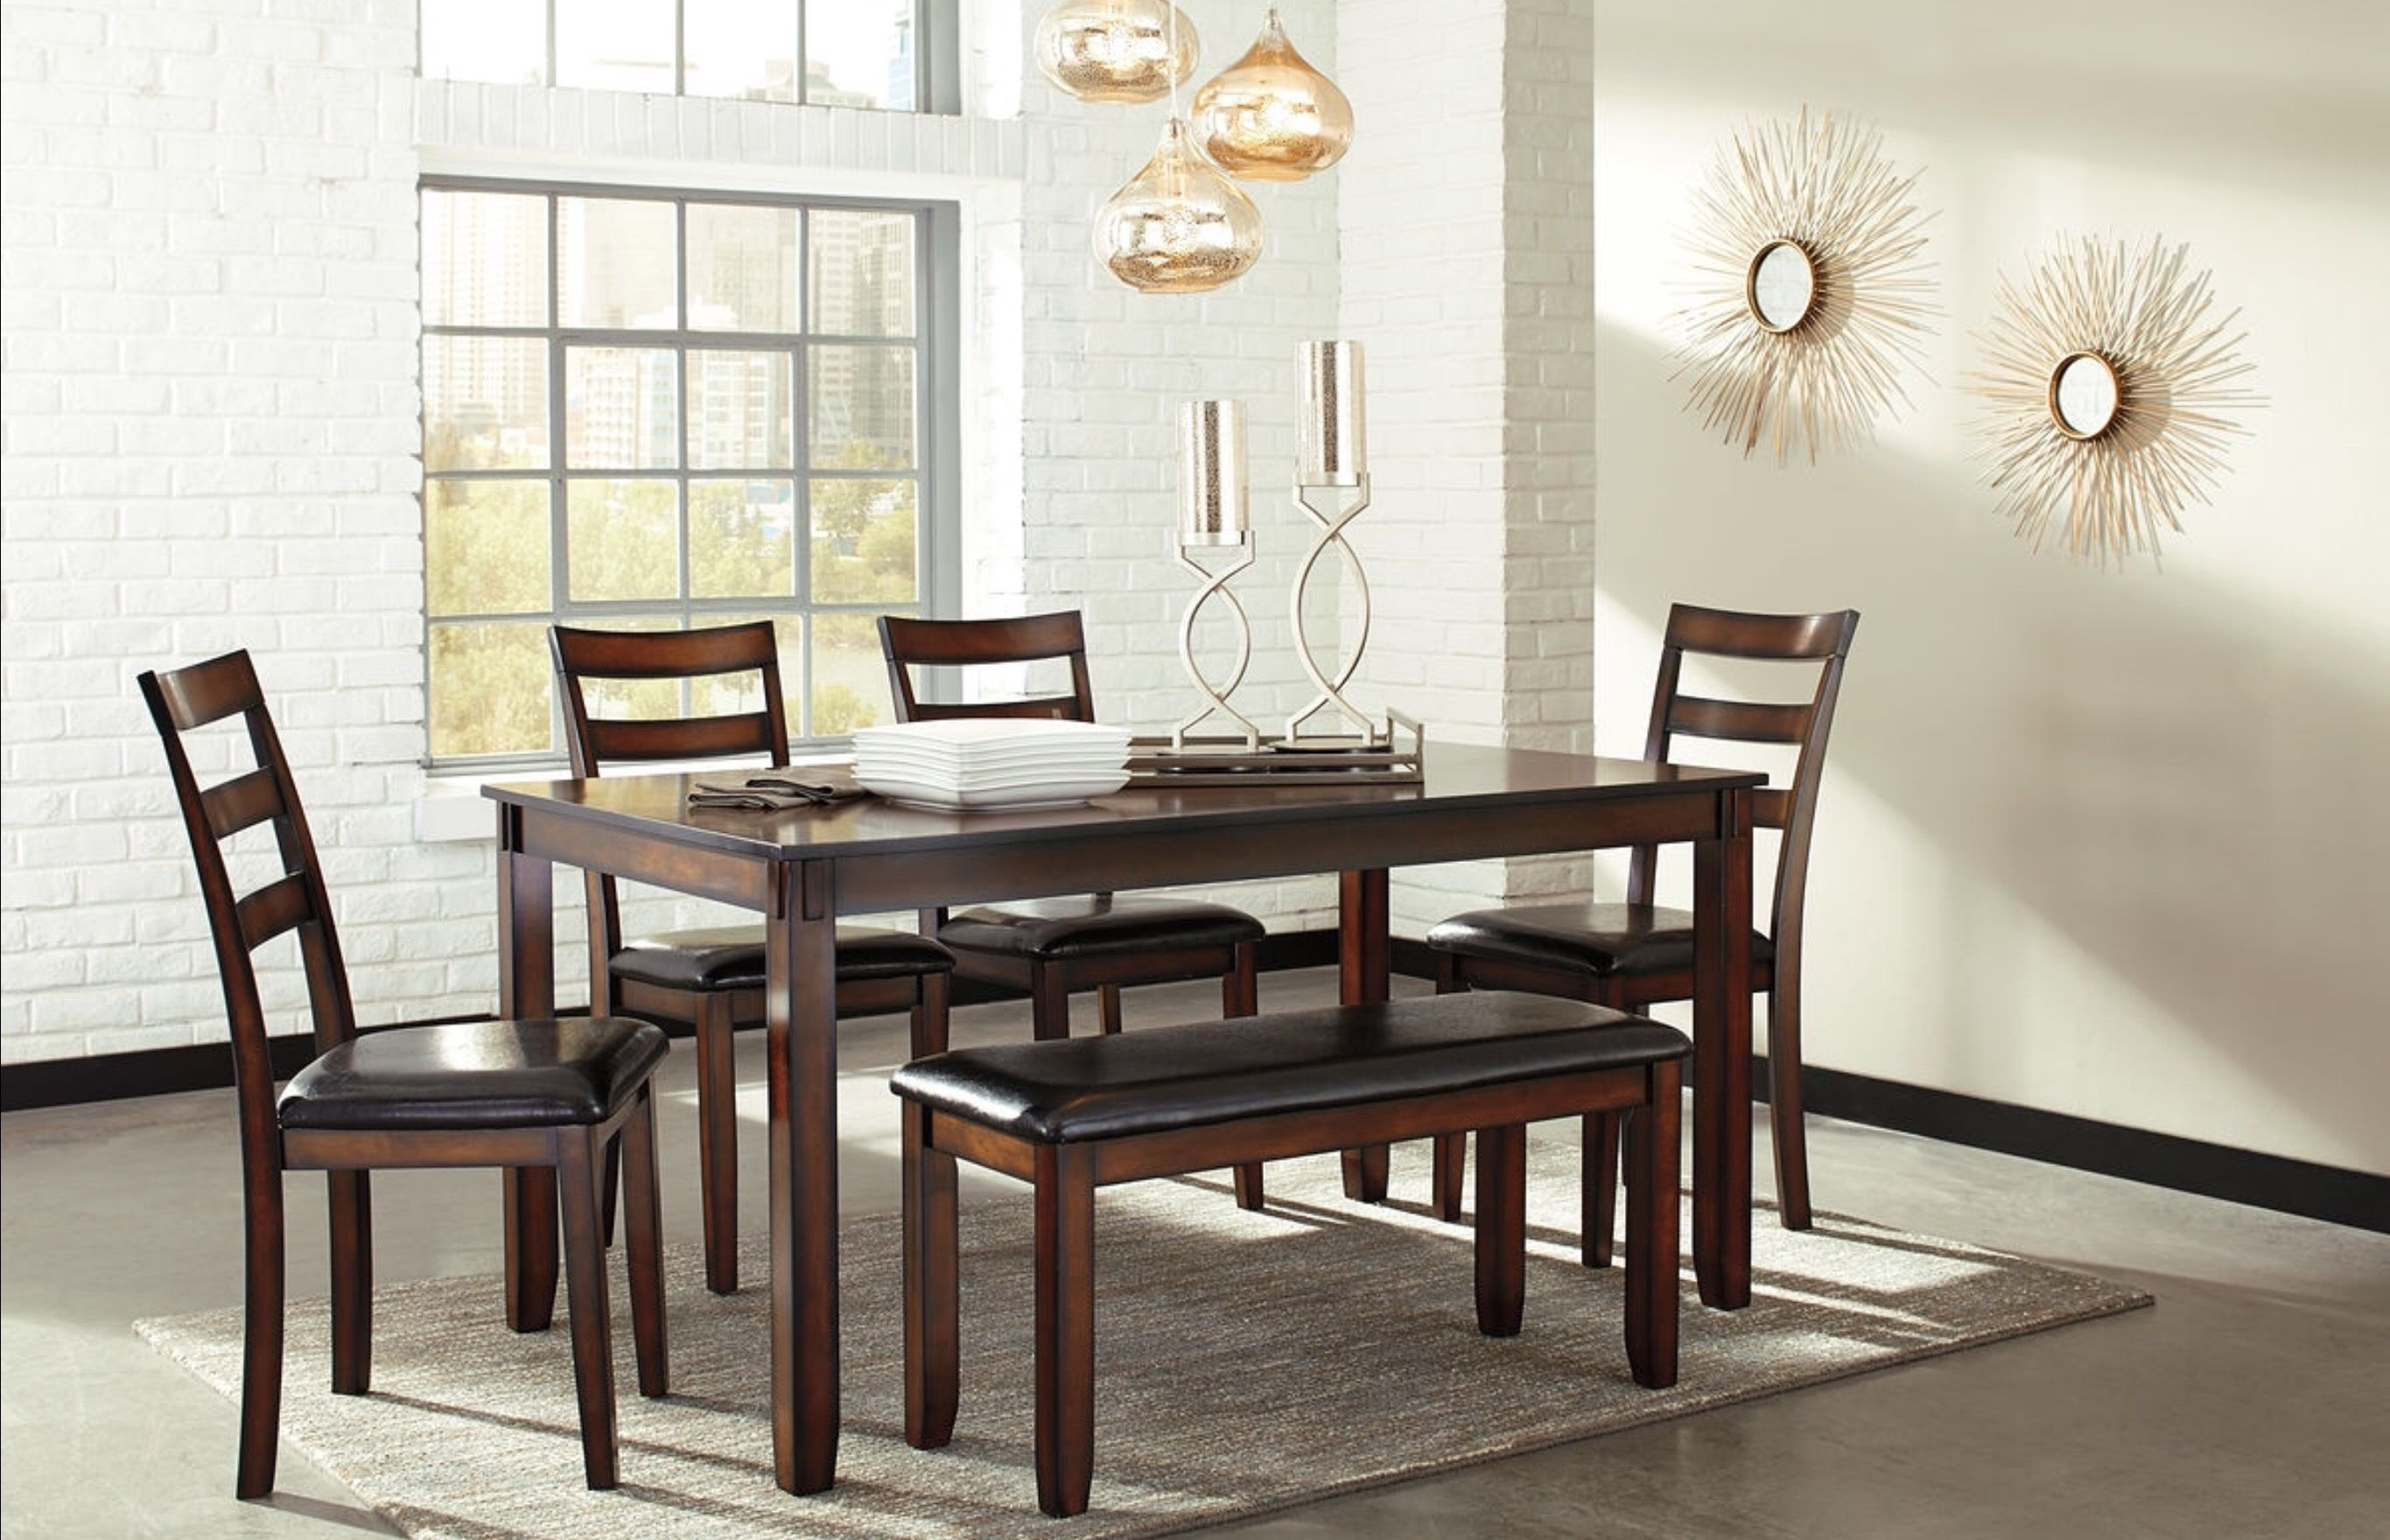 Coviar brown dining room table set made with birch veneers and hardwood solids and finished in a burnished brown finish chair barstool and bench seat